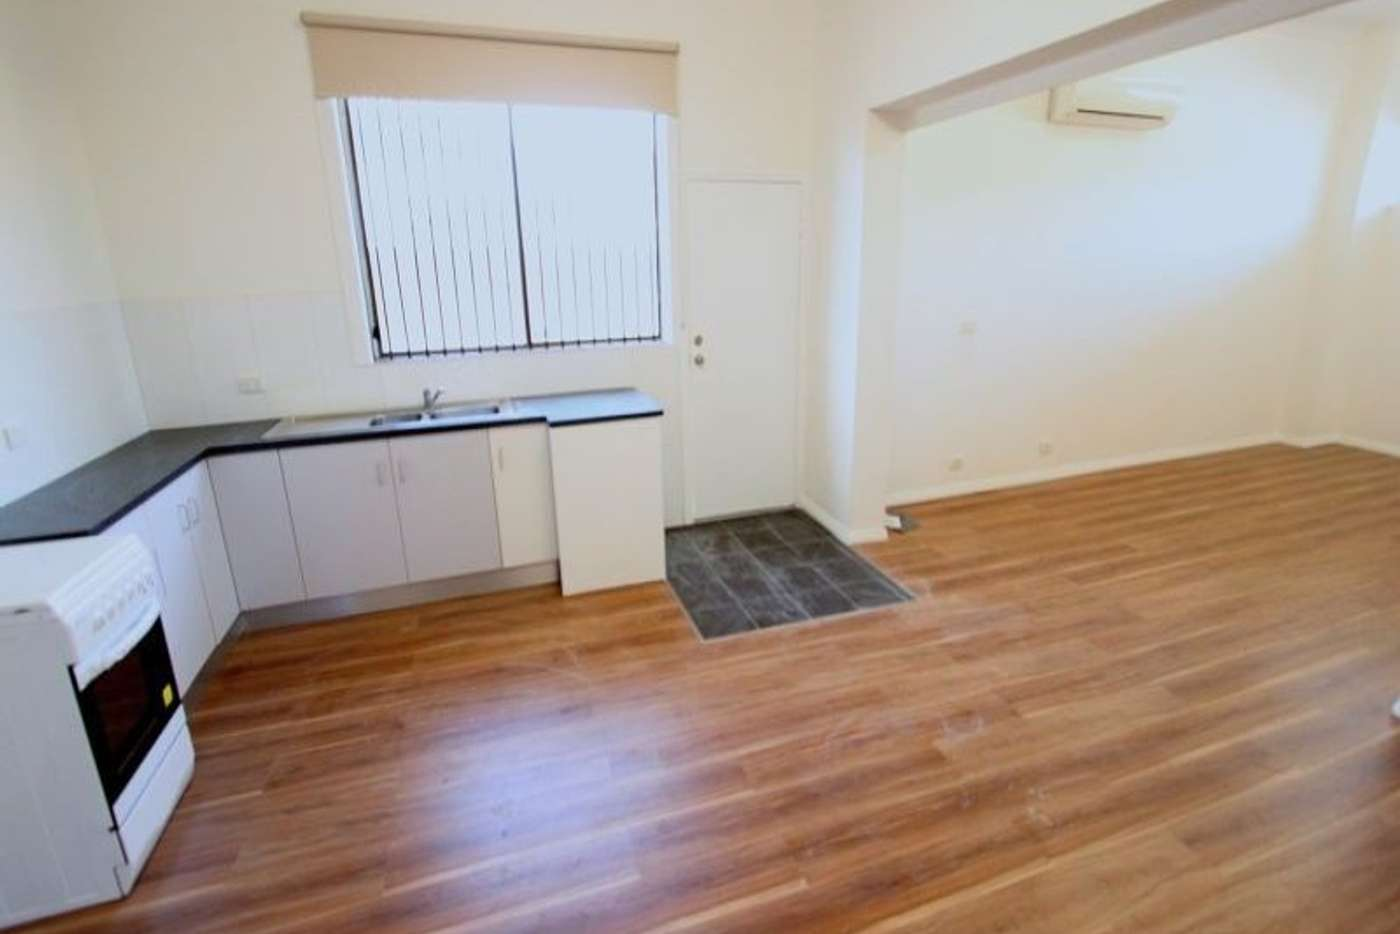 Main view of Homely unit listing, 1/716 Barkly Street, West Footscray VIC 3012